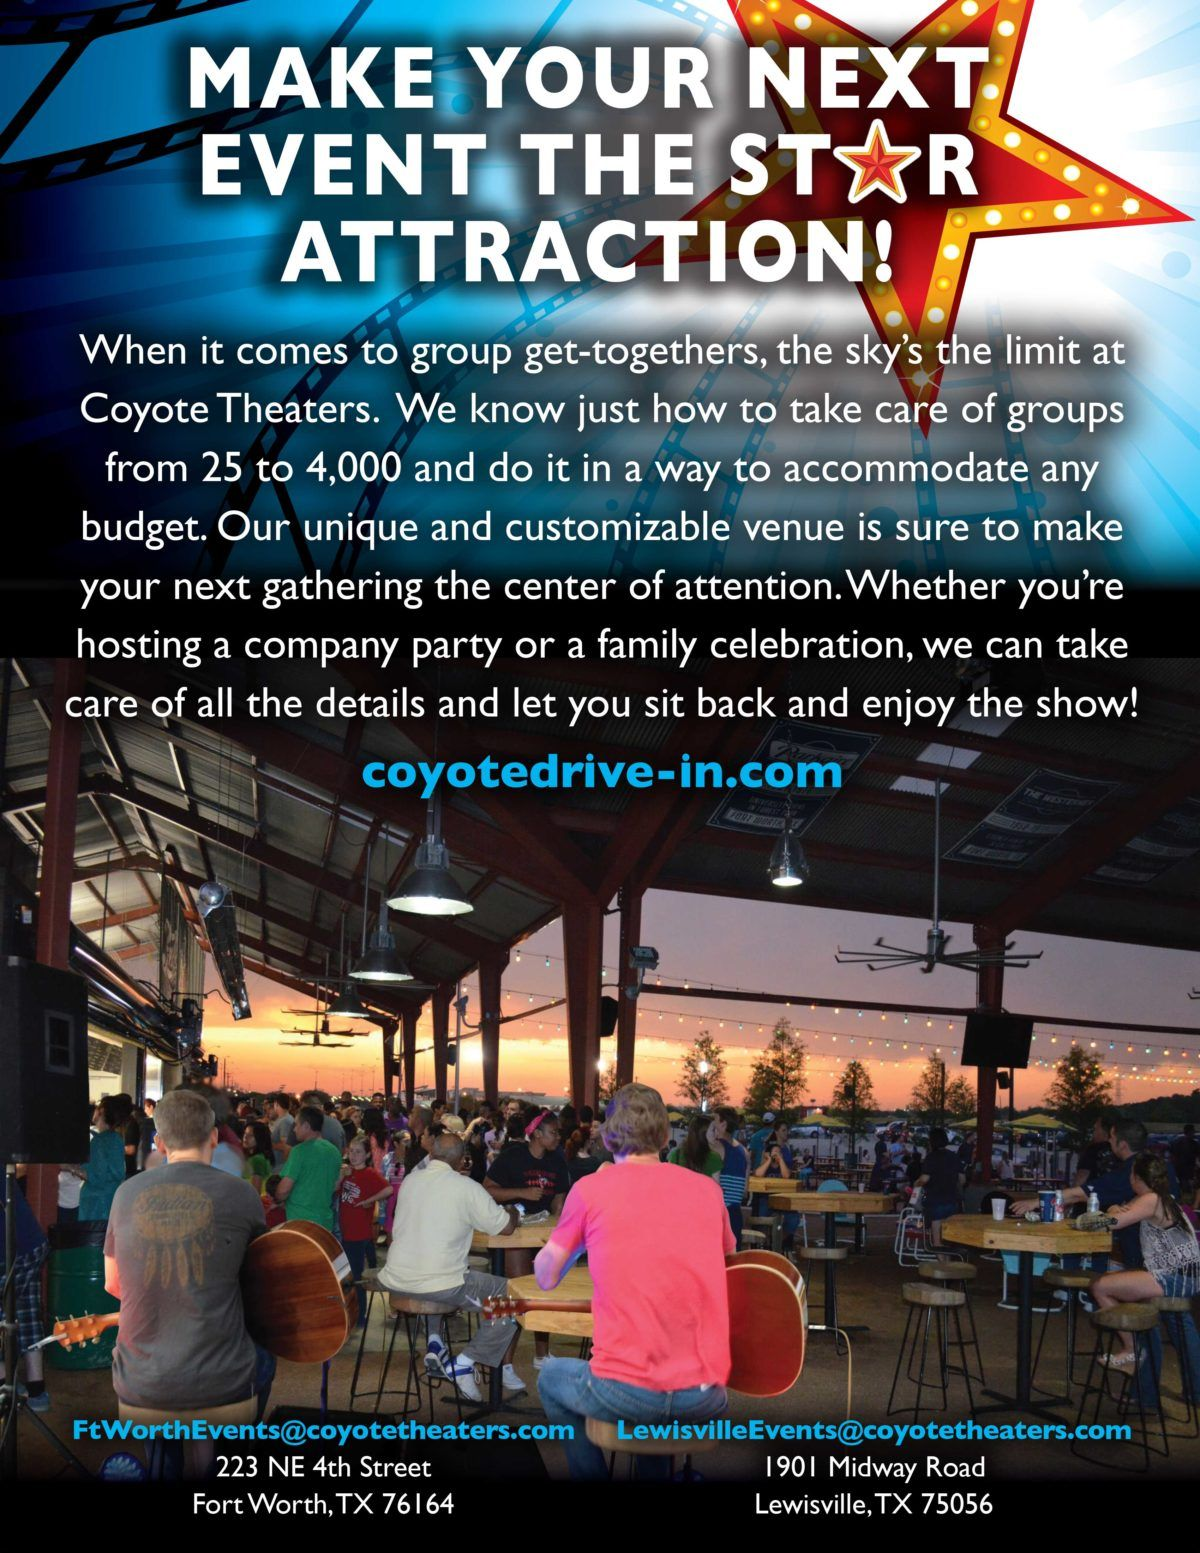 Coyote drivein drive in movie theater drive in movie